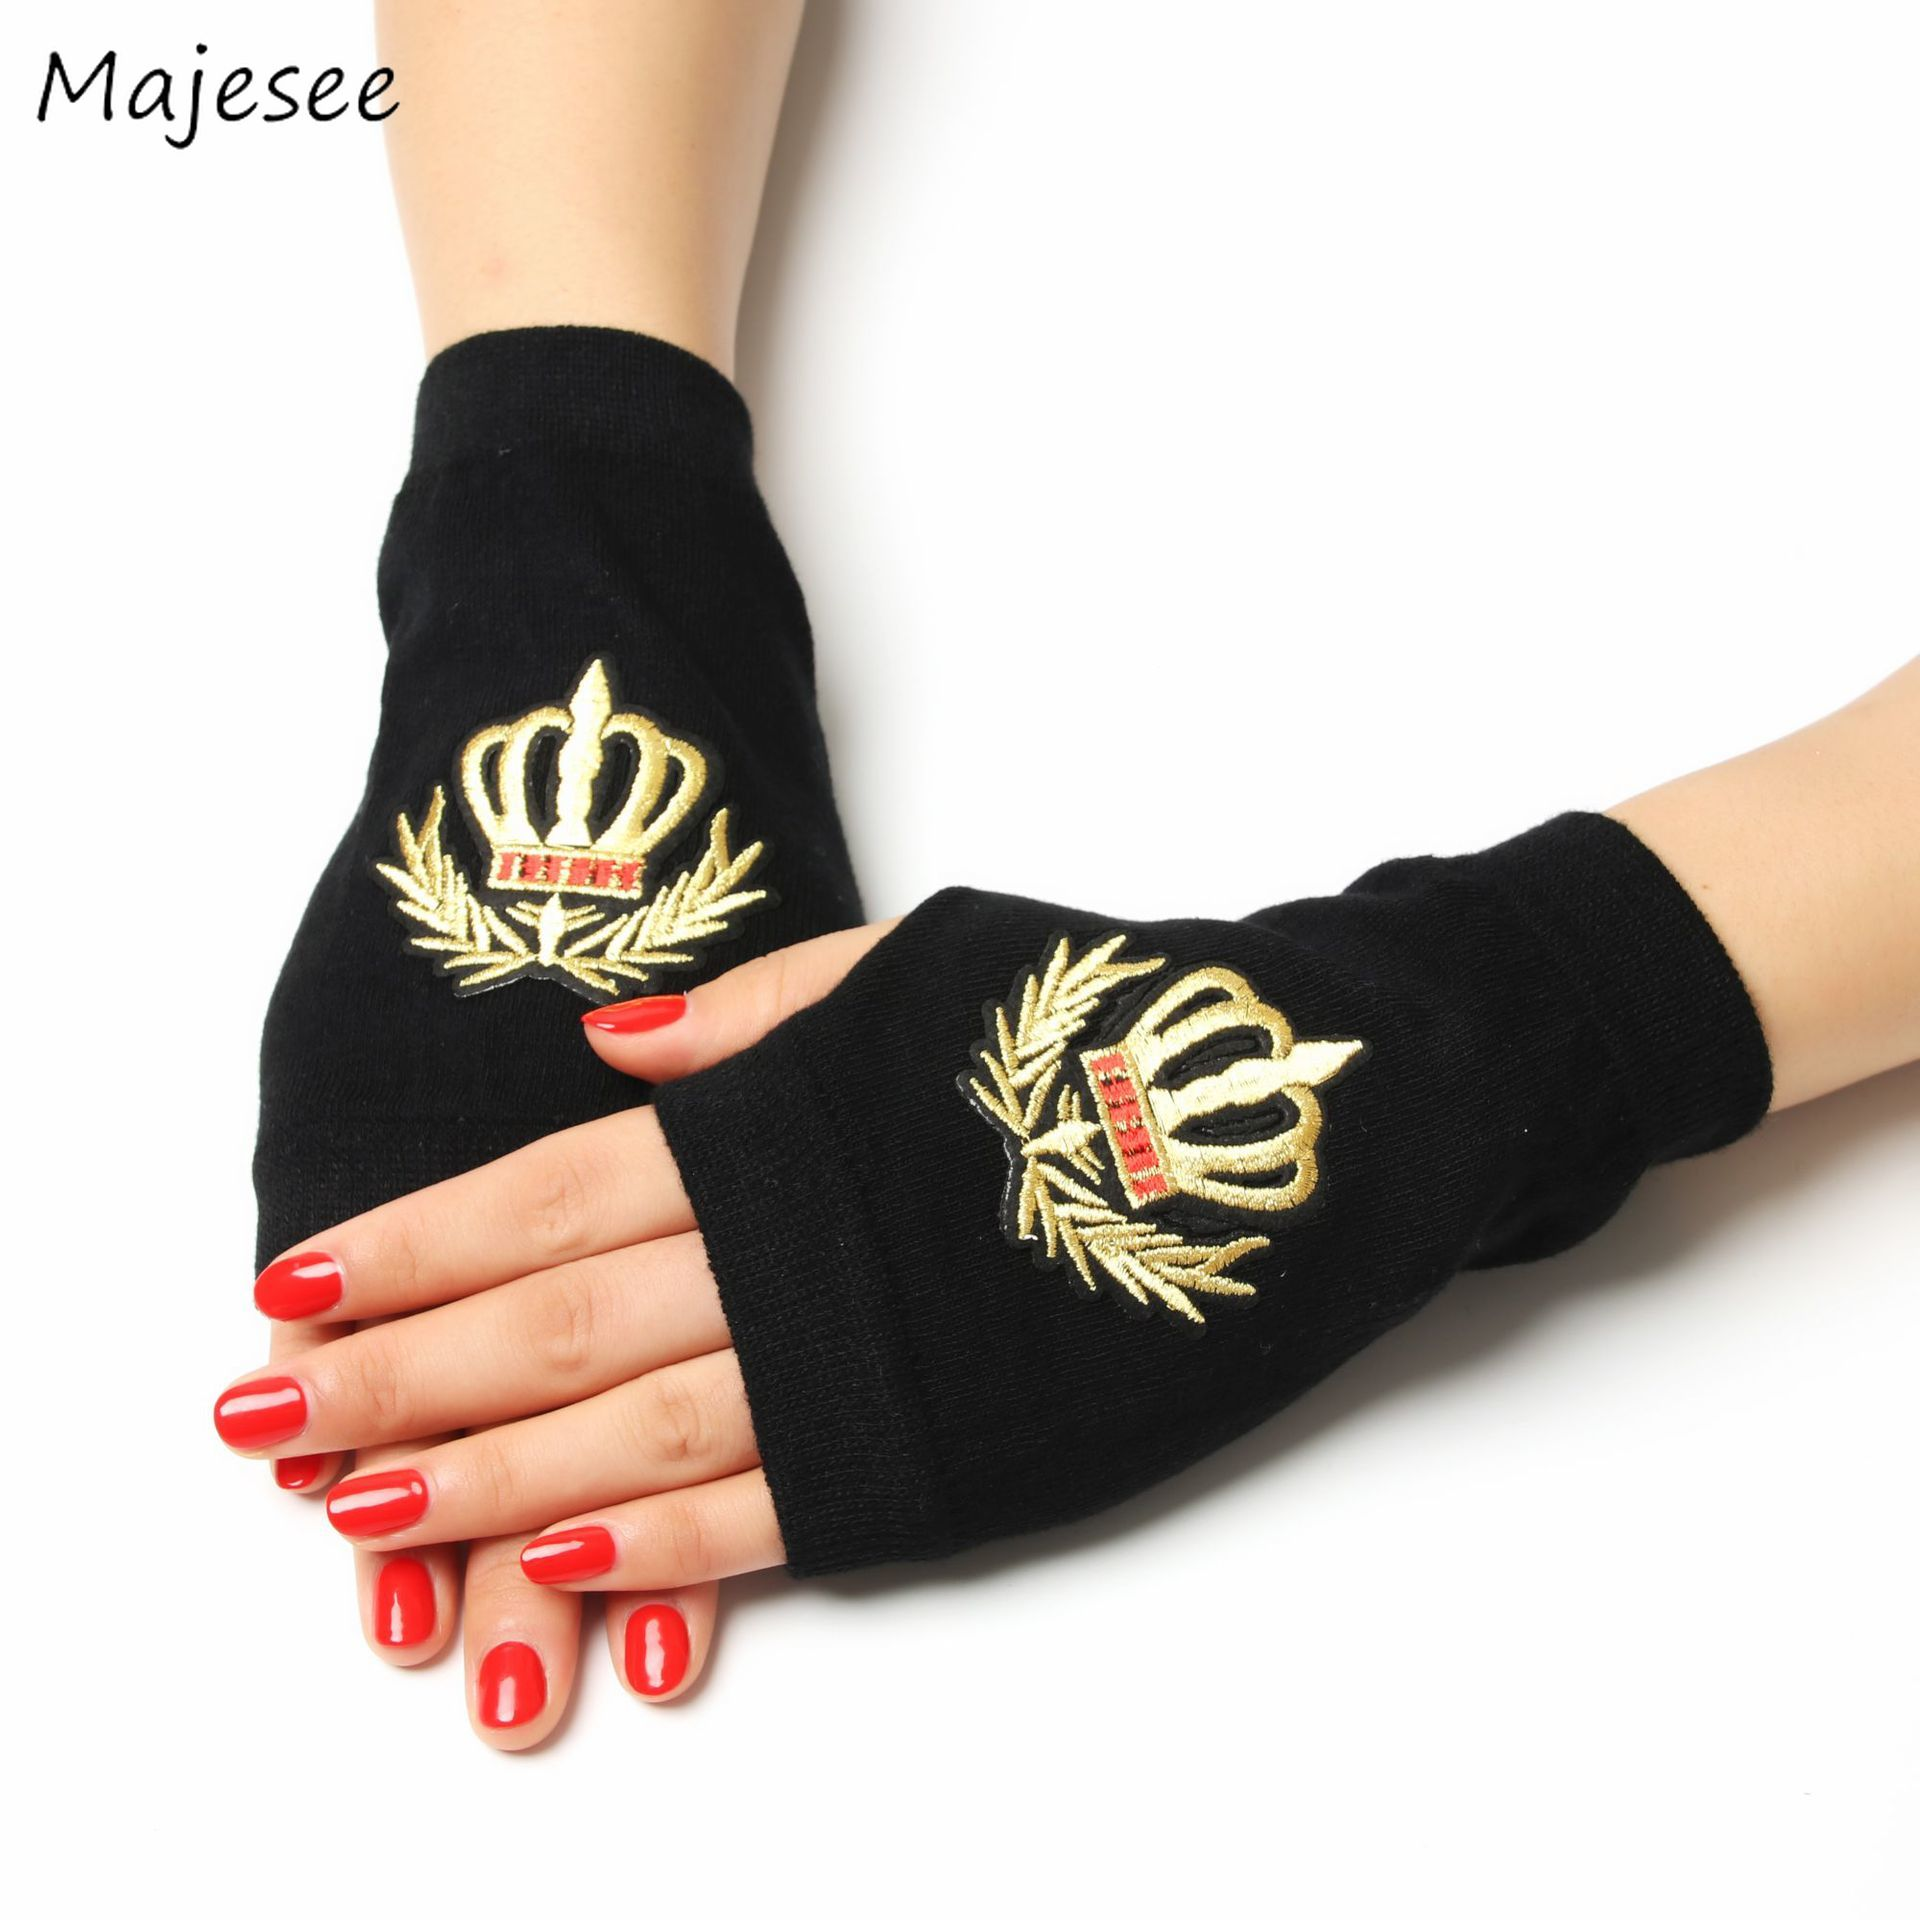 Gloves Women Black Funny Printed Womens Glove Half Finger Simple Casual Winter Warm Elegant Floral Embroidery Chic Fashion New